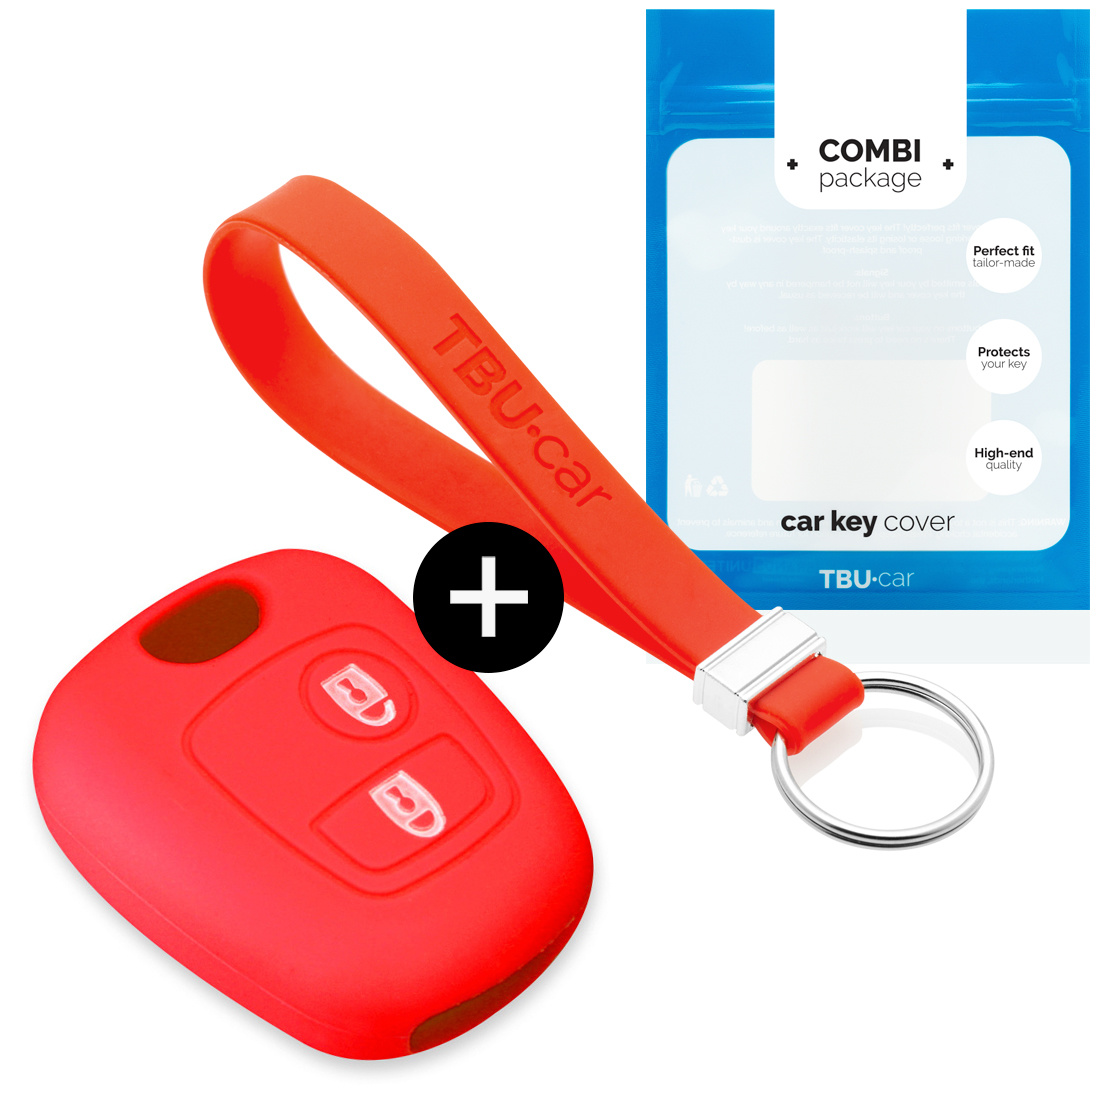 TBU·CAR Citroën Car key cover - Silicone Protective Remote Key Shell - FOB Case Cover - Red